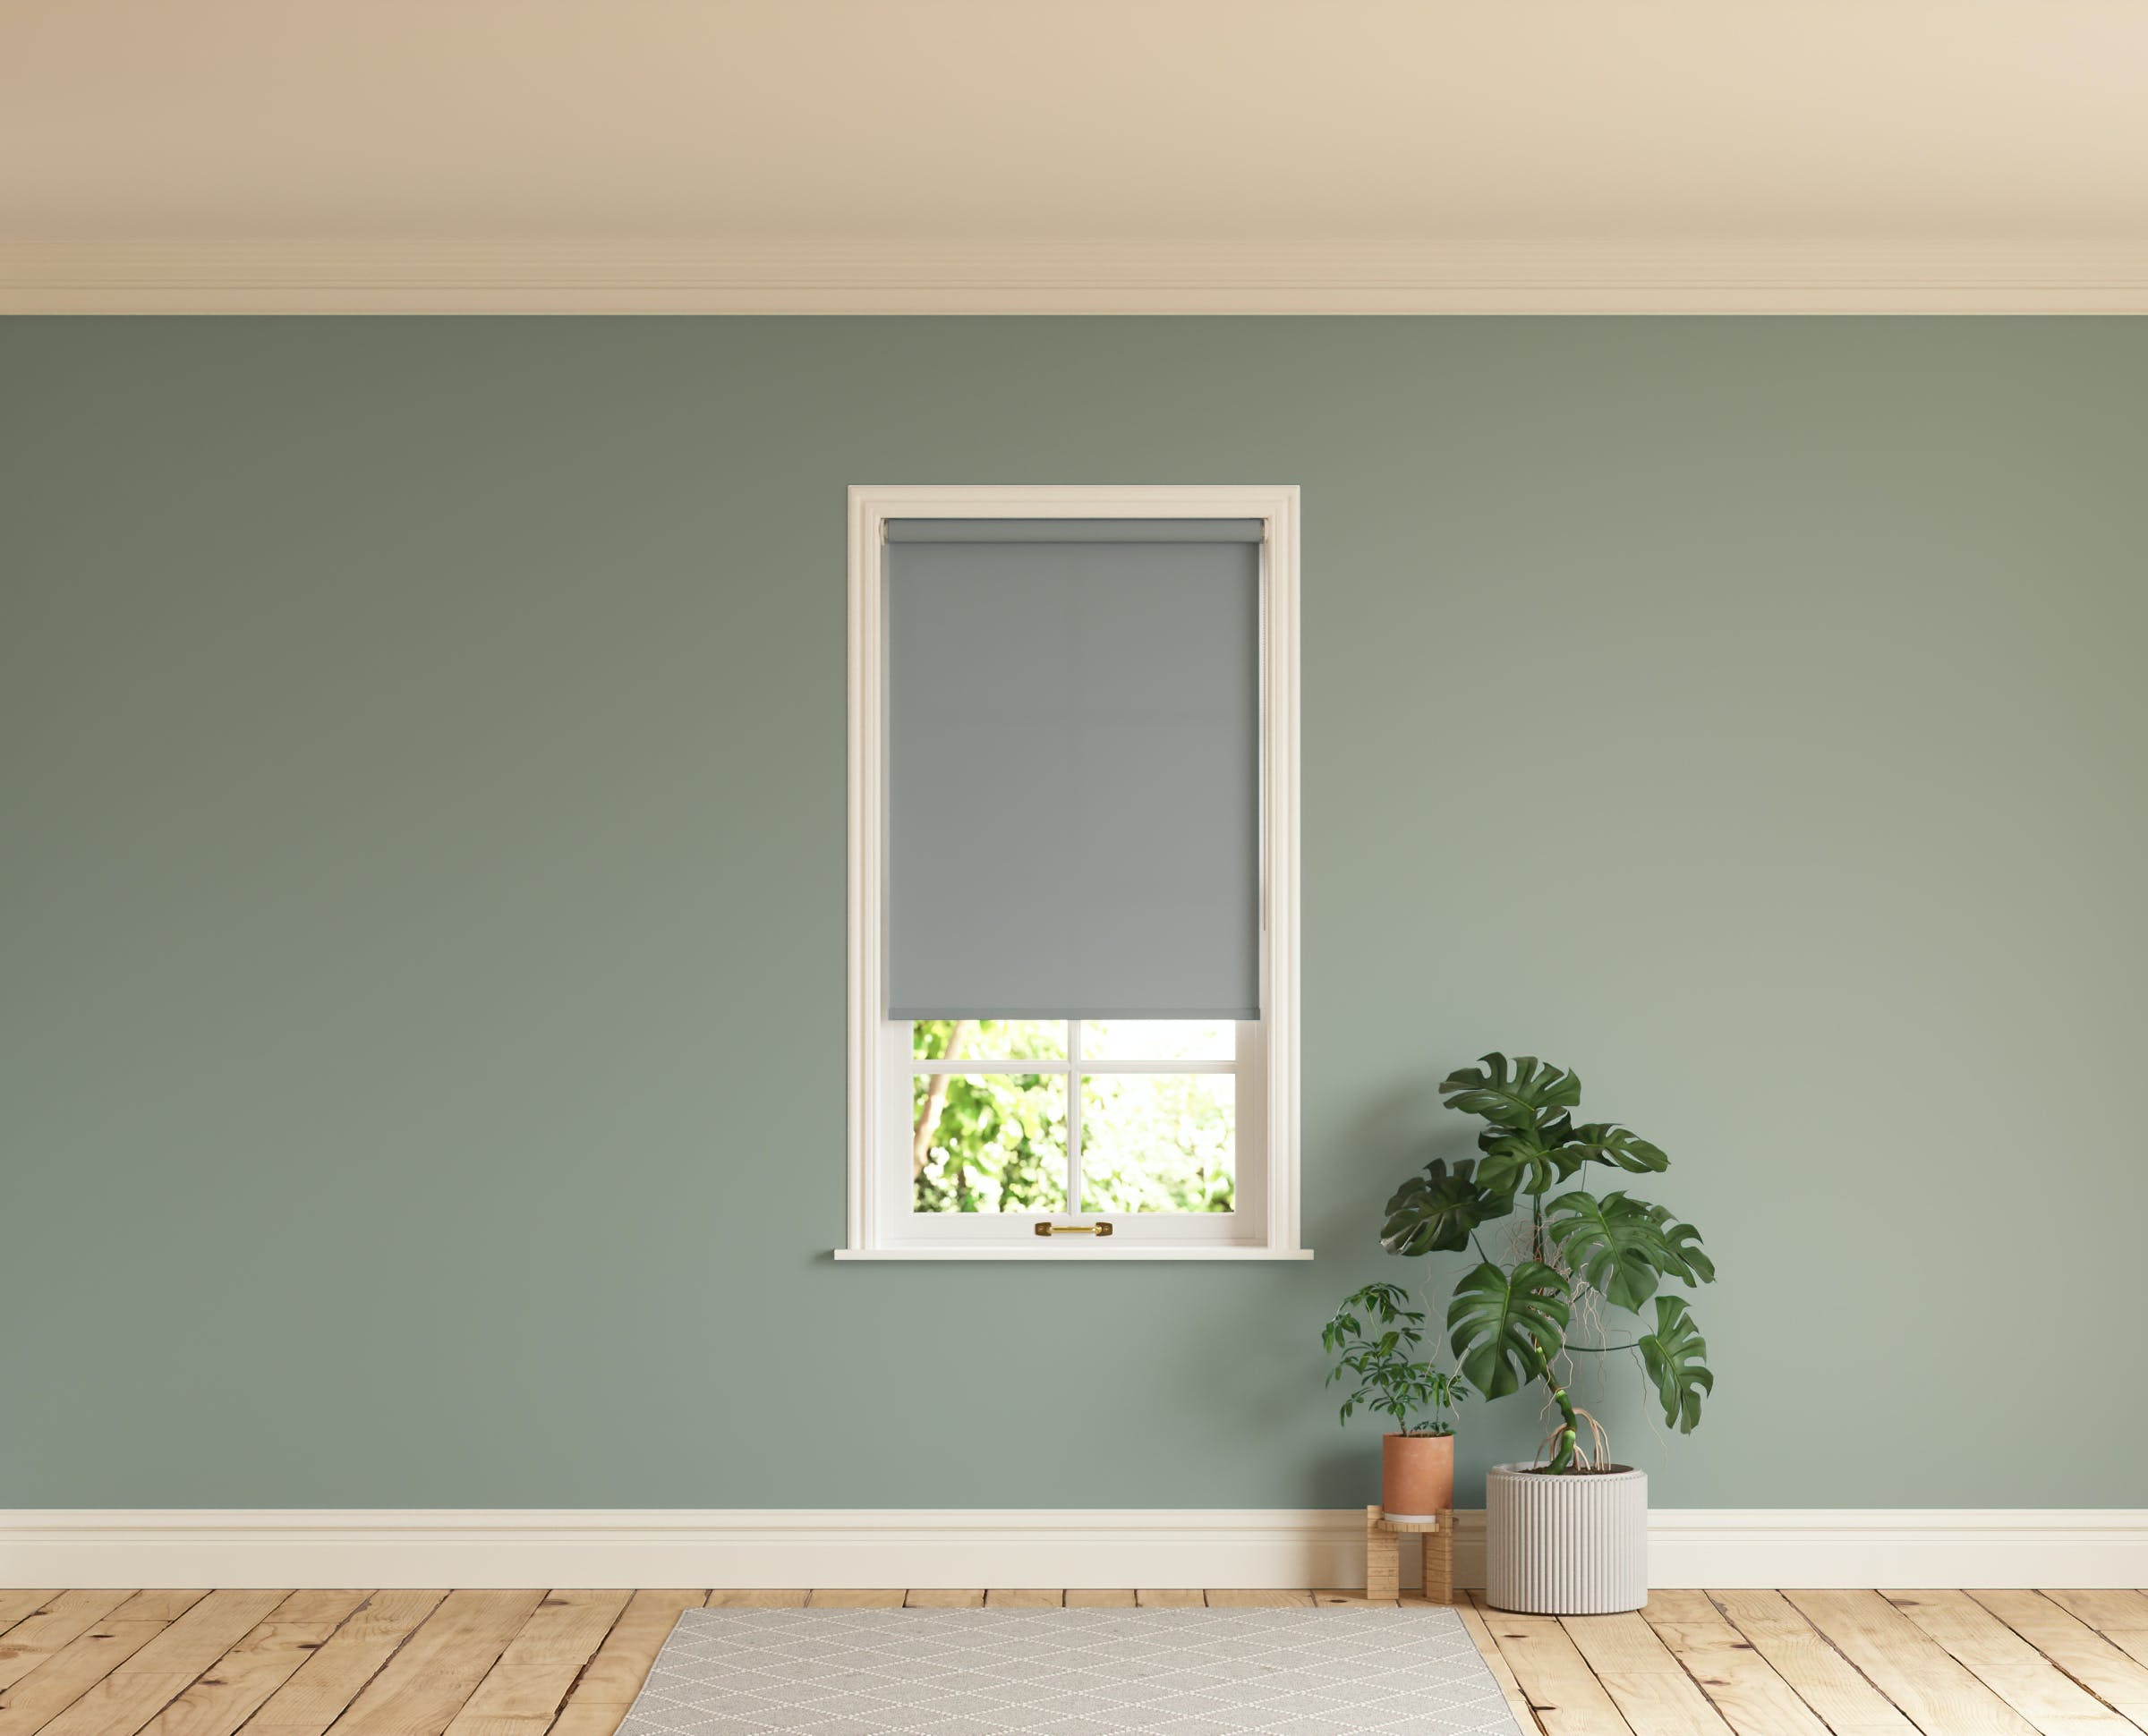 Room with walls painted in Lick Green 02 and Grey 06 roller blinds